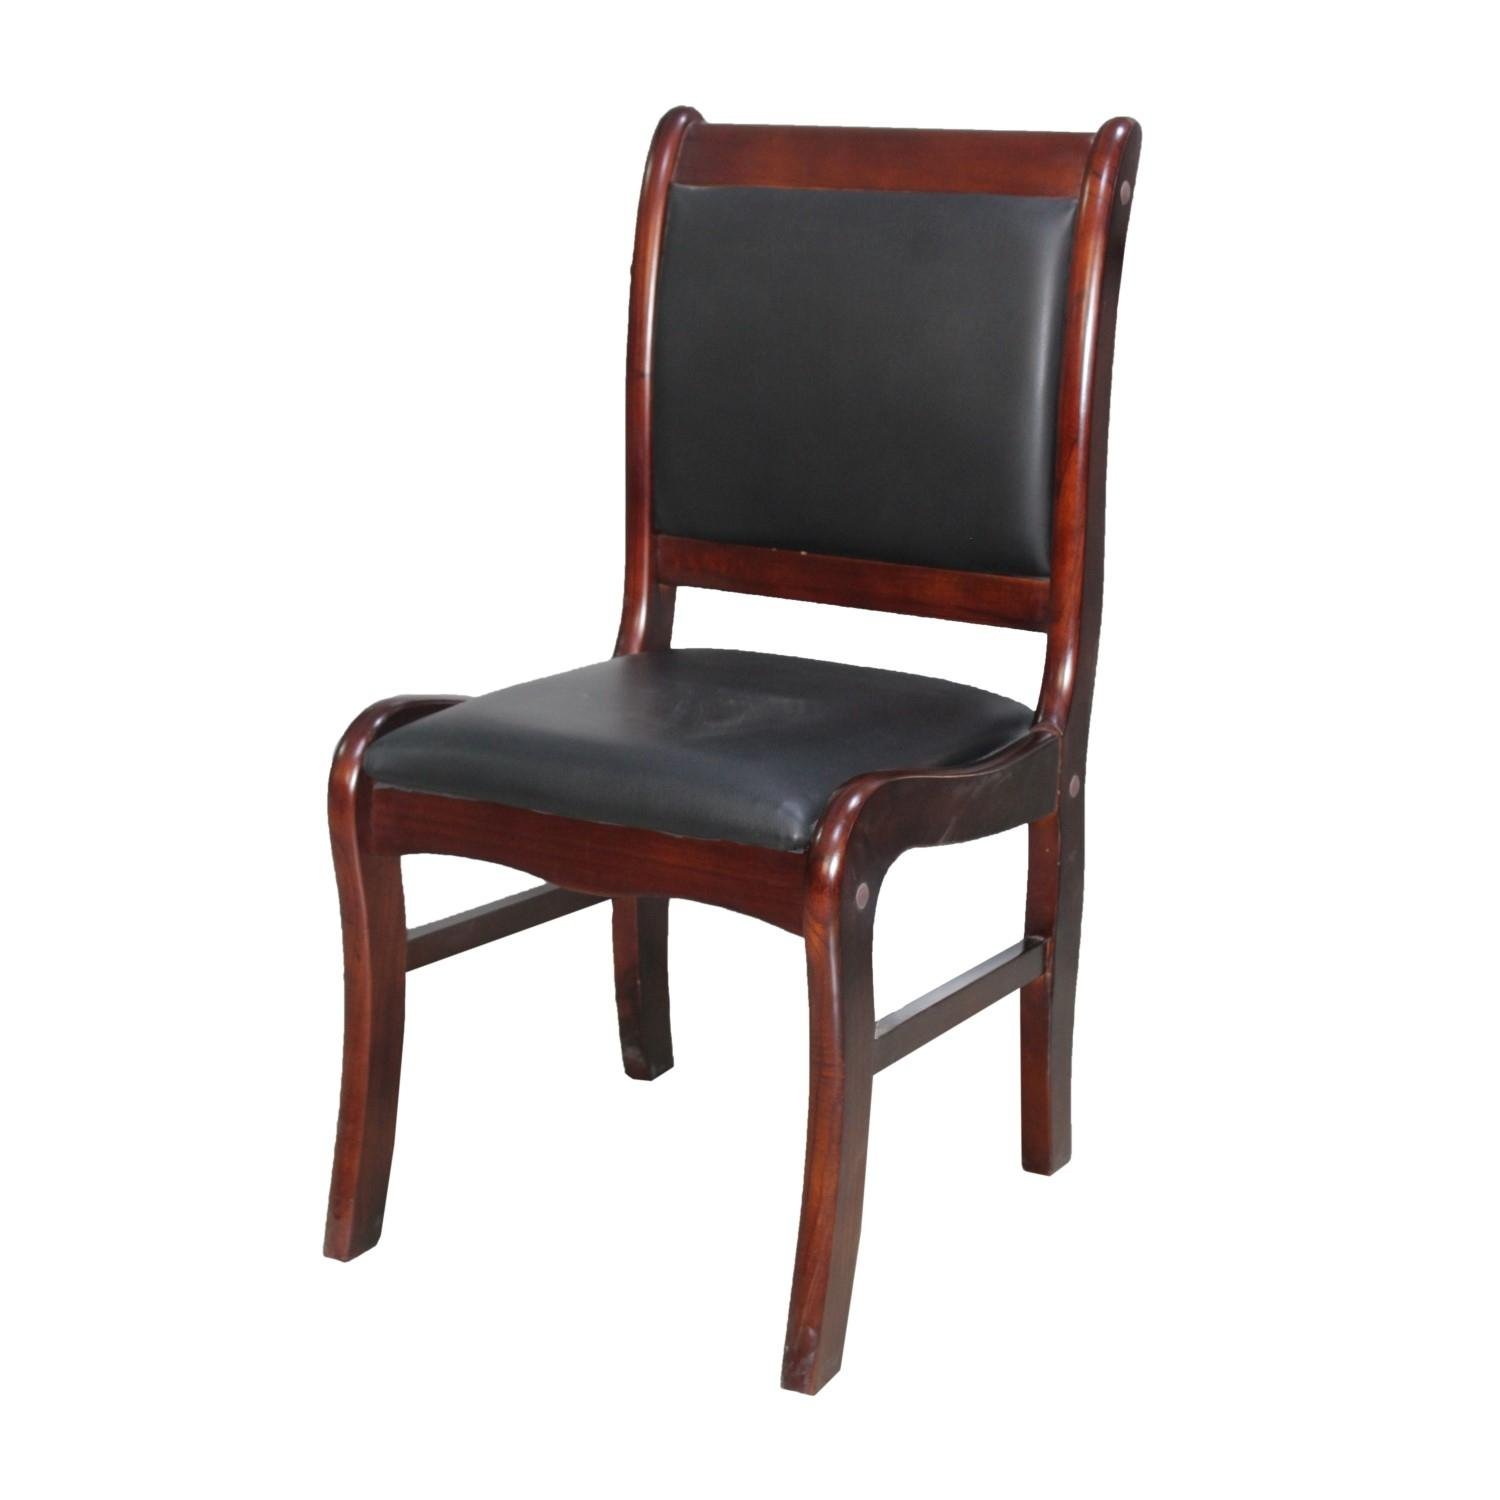 Chair Price Hx196 Padded Visitor Chair Brown Black